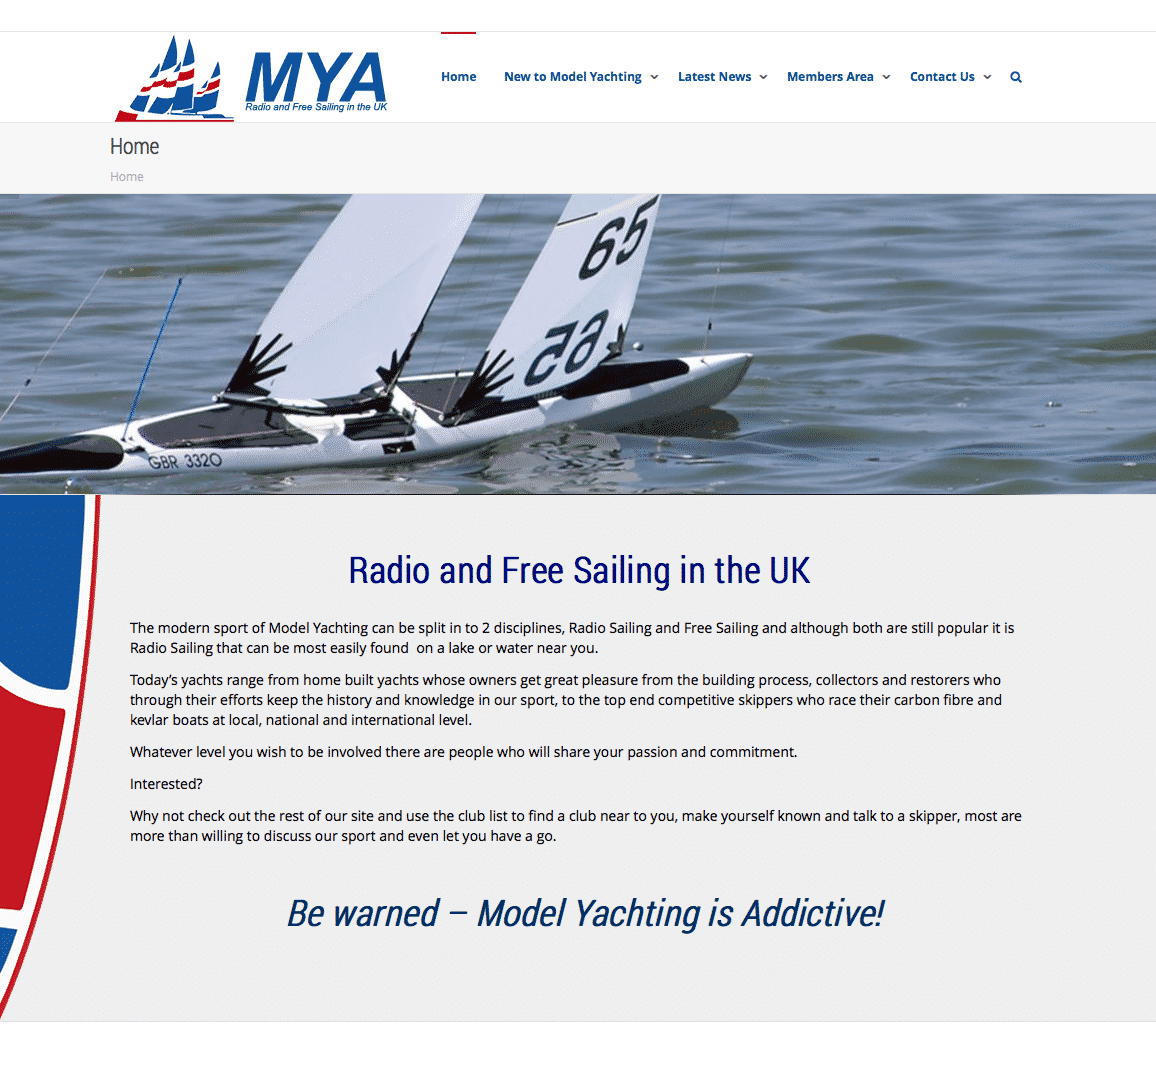 Model Yachting Association of Great Britain